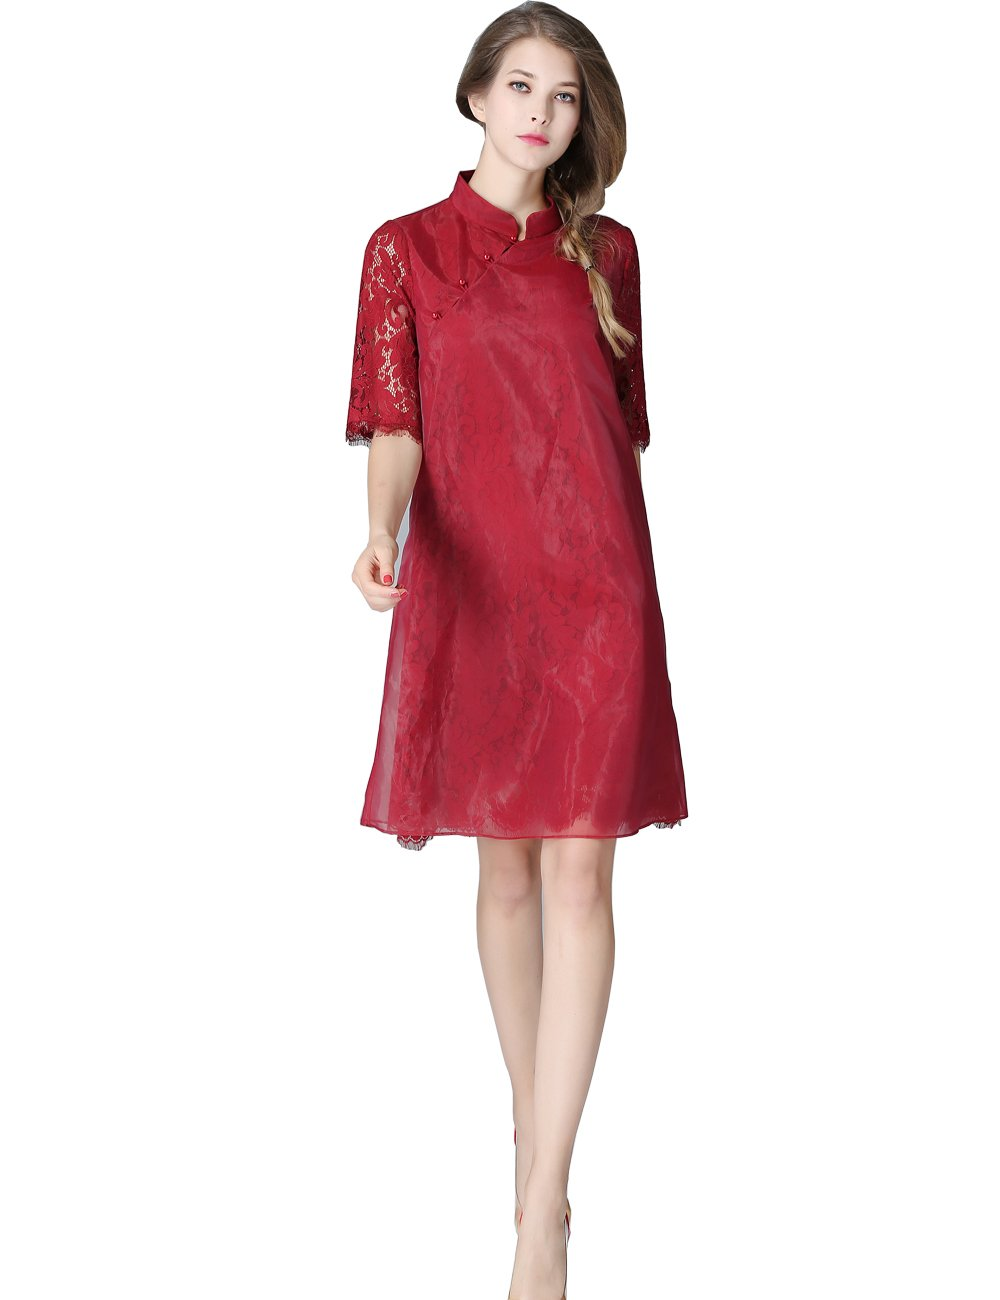 Olisi Women's Elegant Cheongsam Lace Dress Glass Yarn Cover Pearl Buttons with Half Sleeves Robe Dress (M, Red) by Olisi